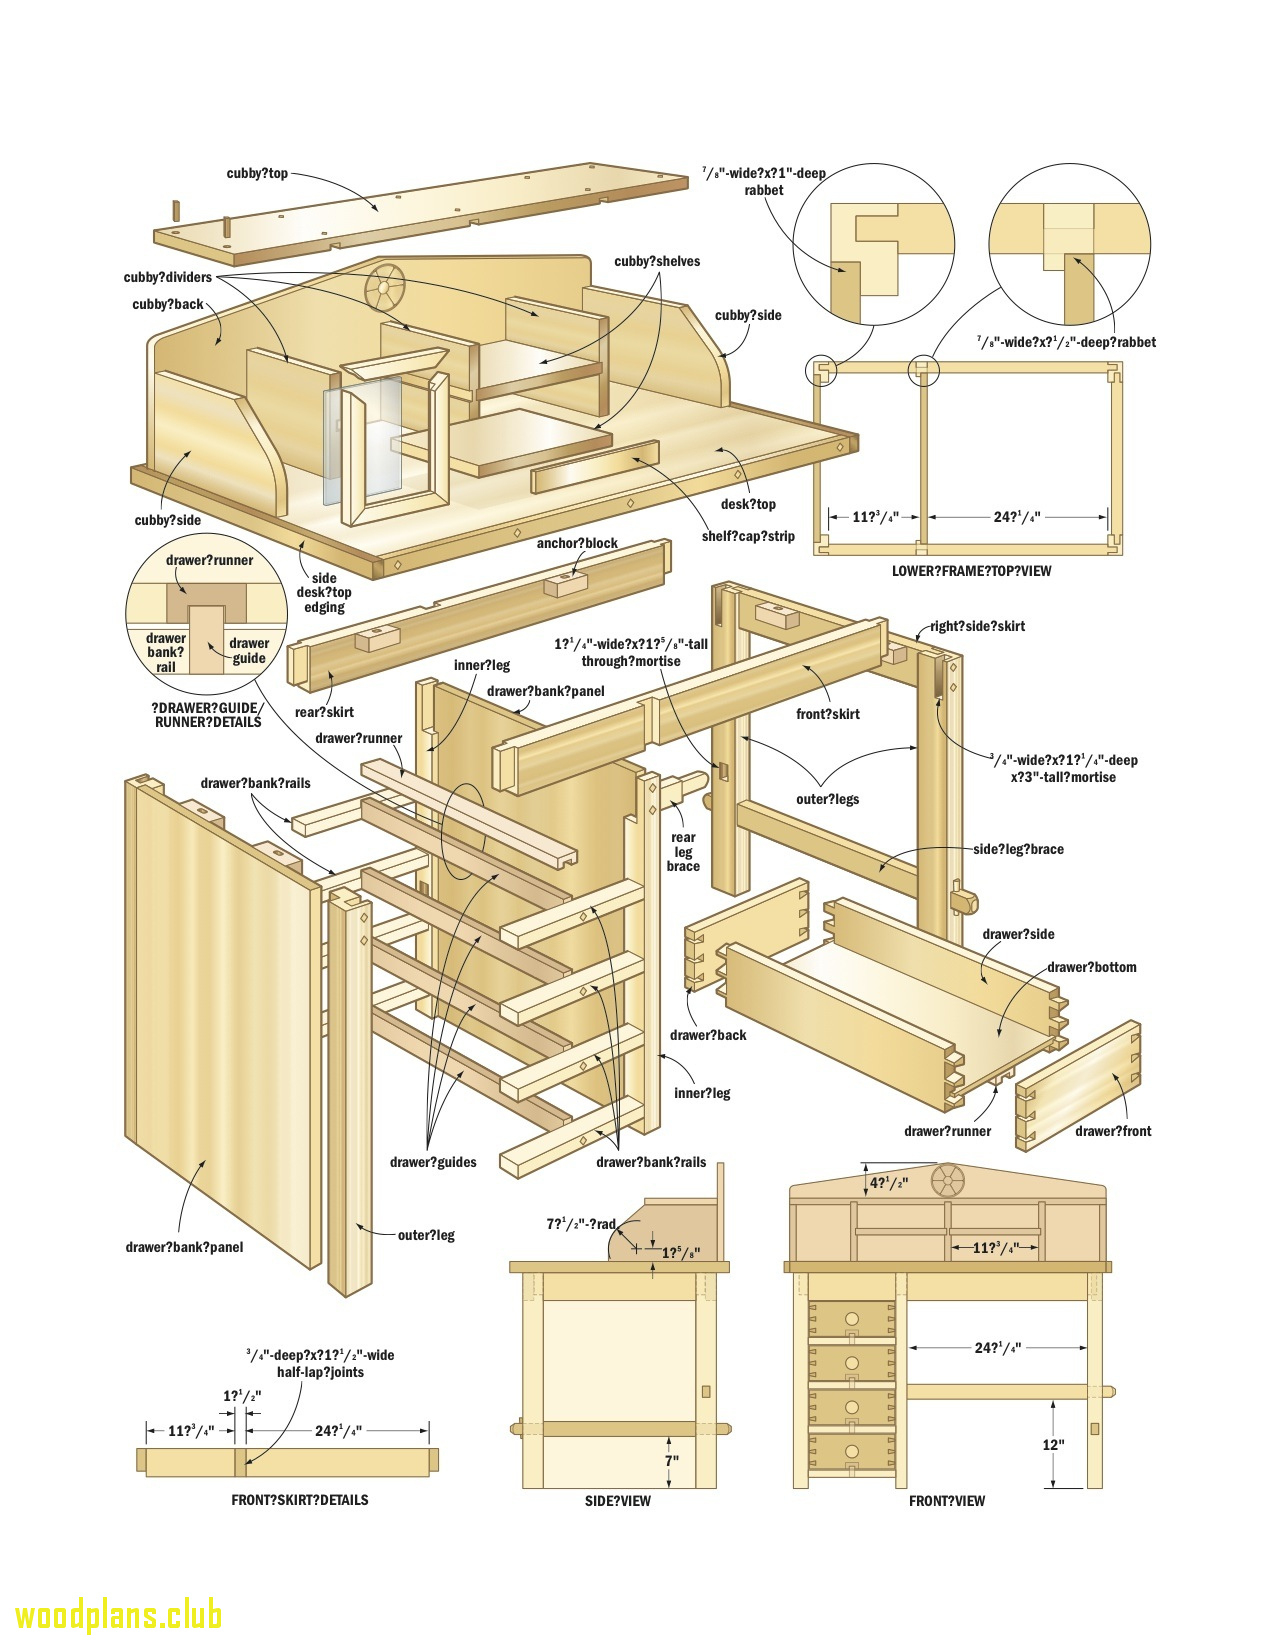 Free Printable Woodworking Plans - Uma Printable - Free Printable Woodworking Plans